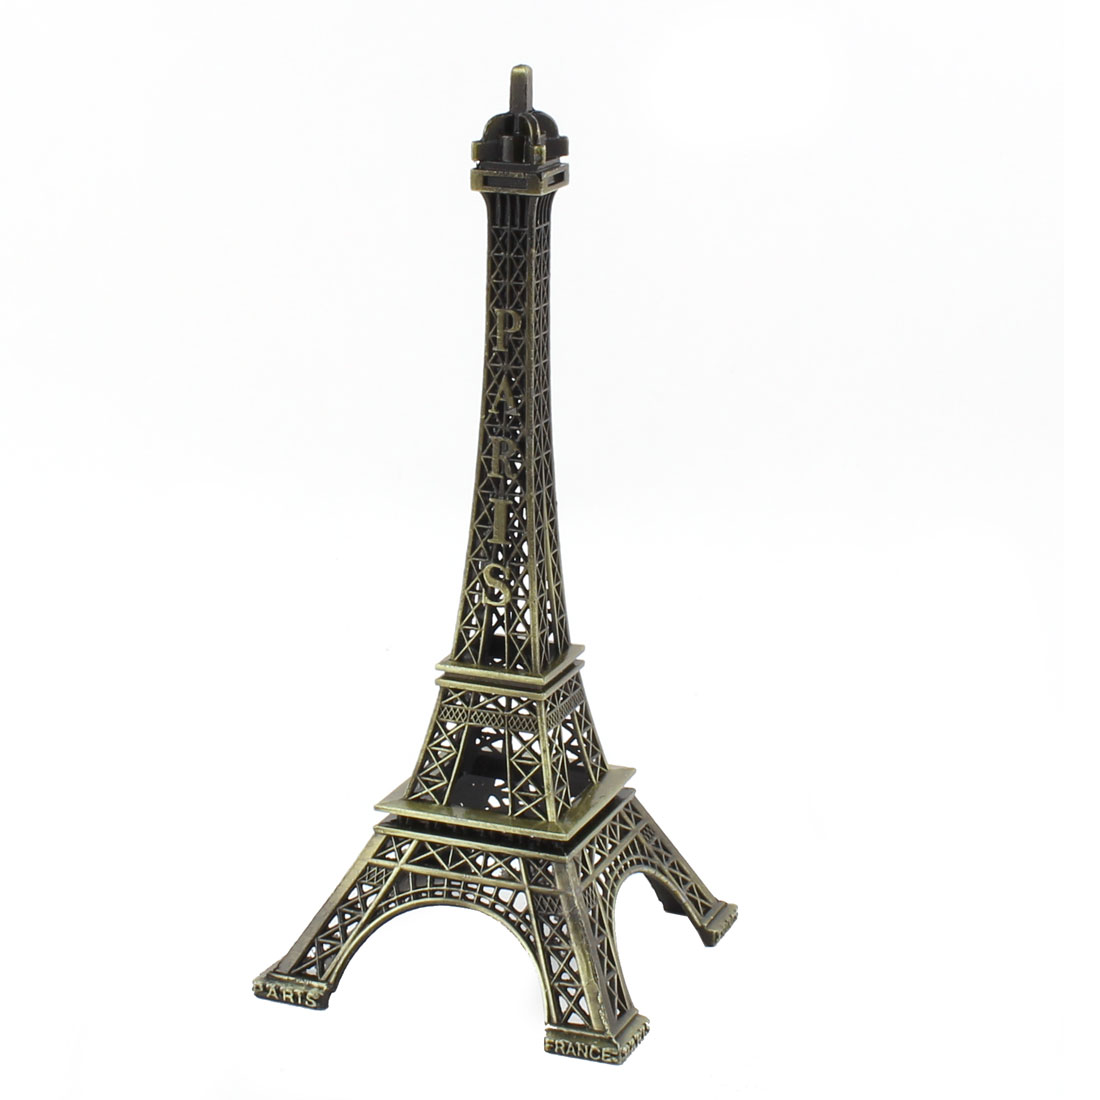 Home Metal Collection Souvenir Paris Mini Eiffel Tower Model Pattern Ornament Bronze Tone